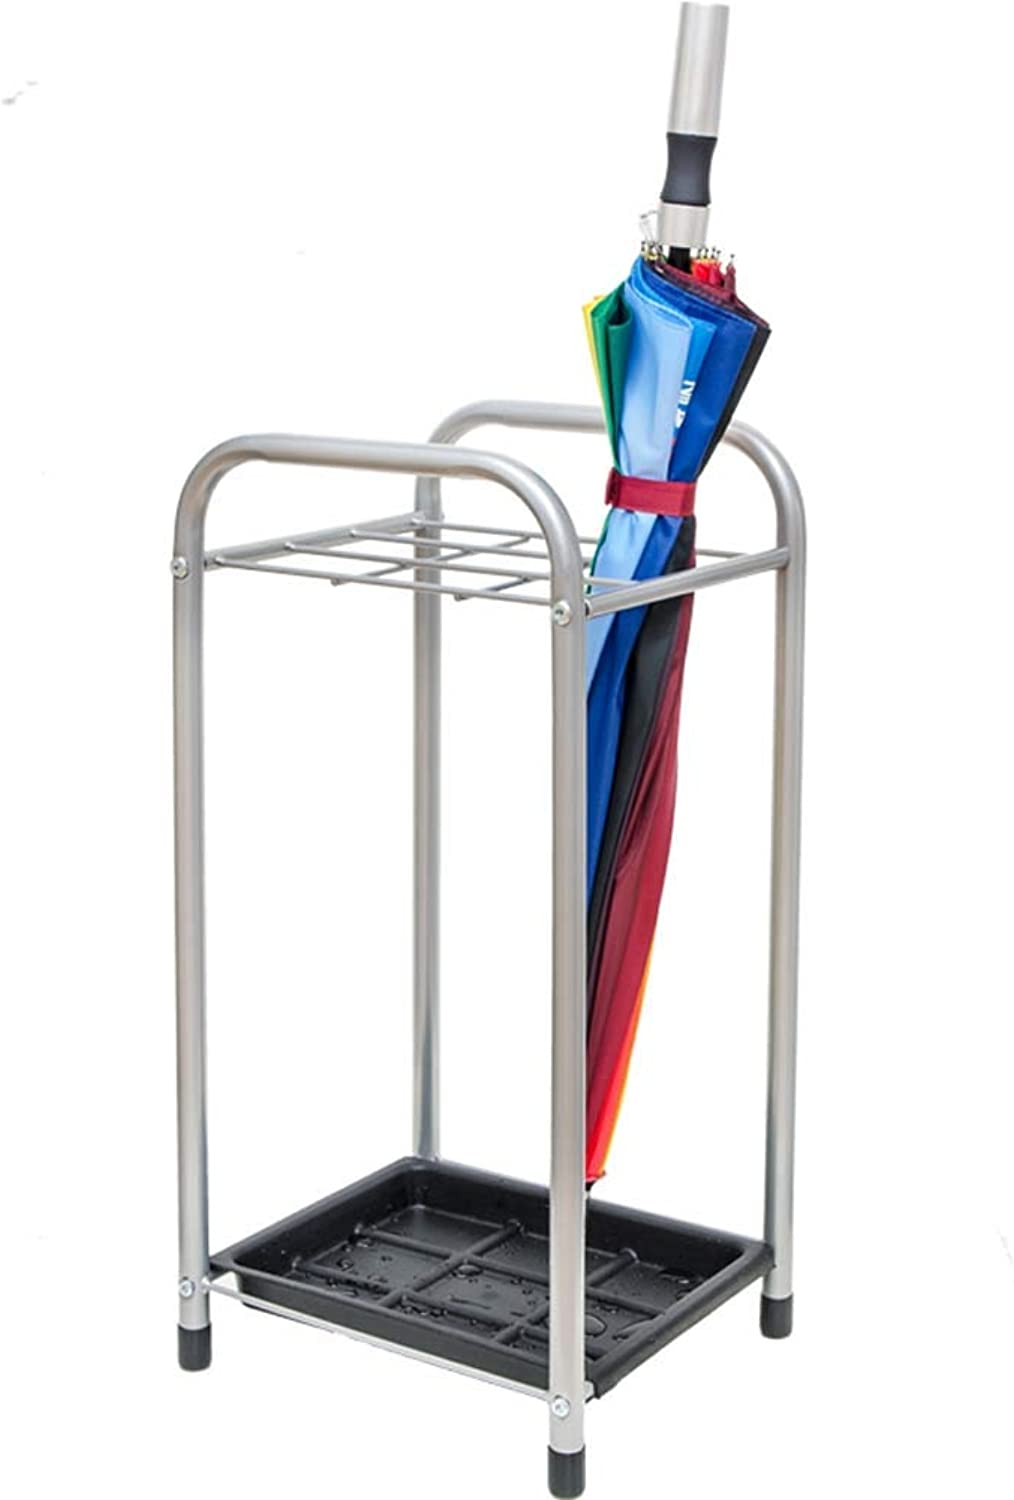 Umbrella Stand That can accommodate 9 Umbrellas for The Hotel Office Family Corridor 29.5 × 26 × 58cm